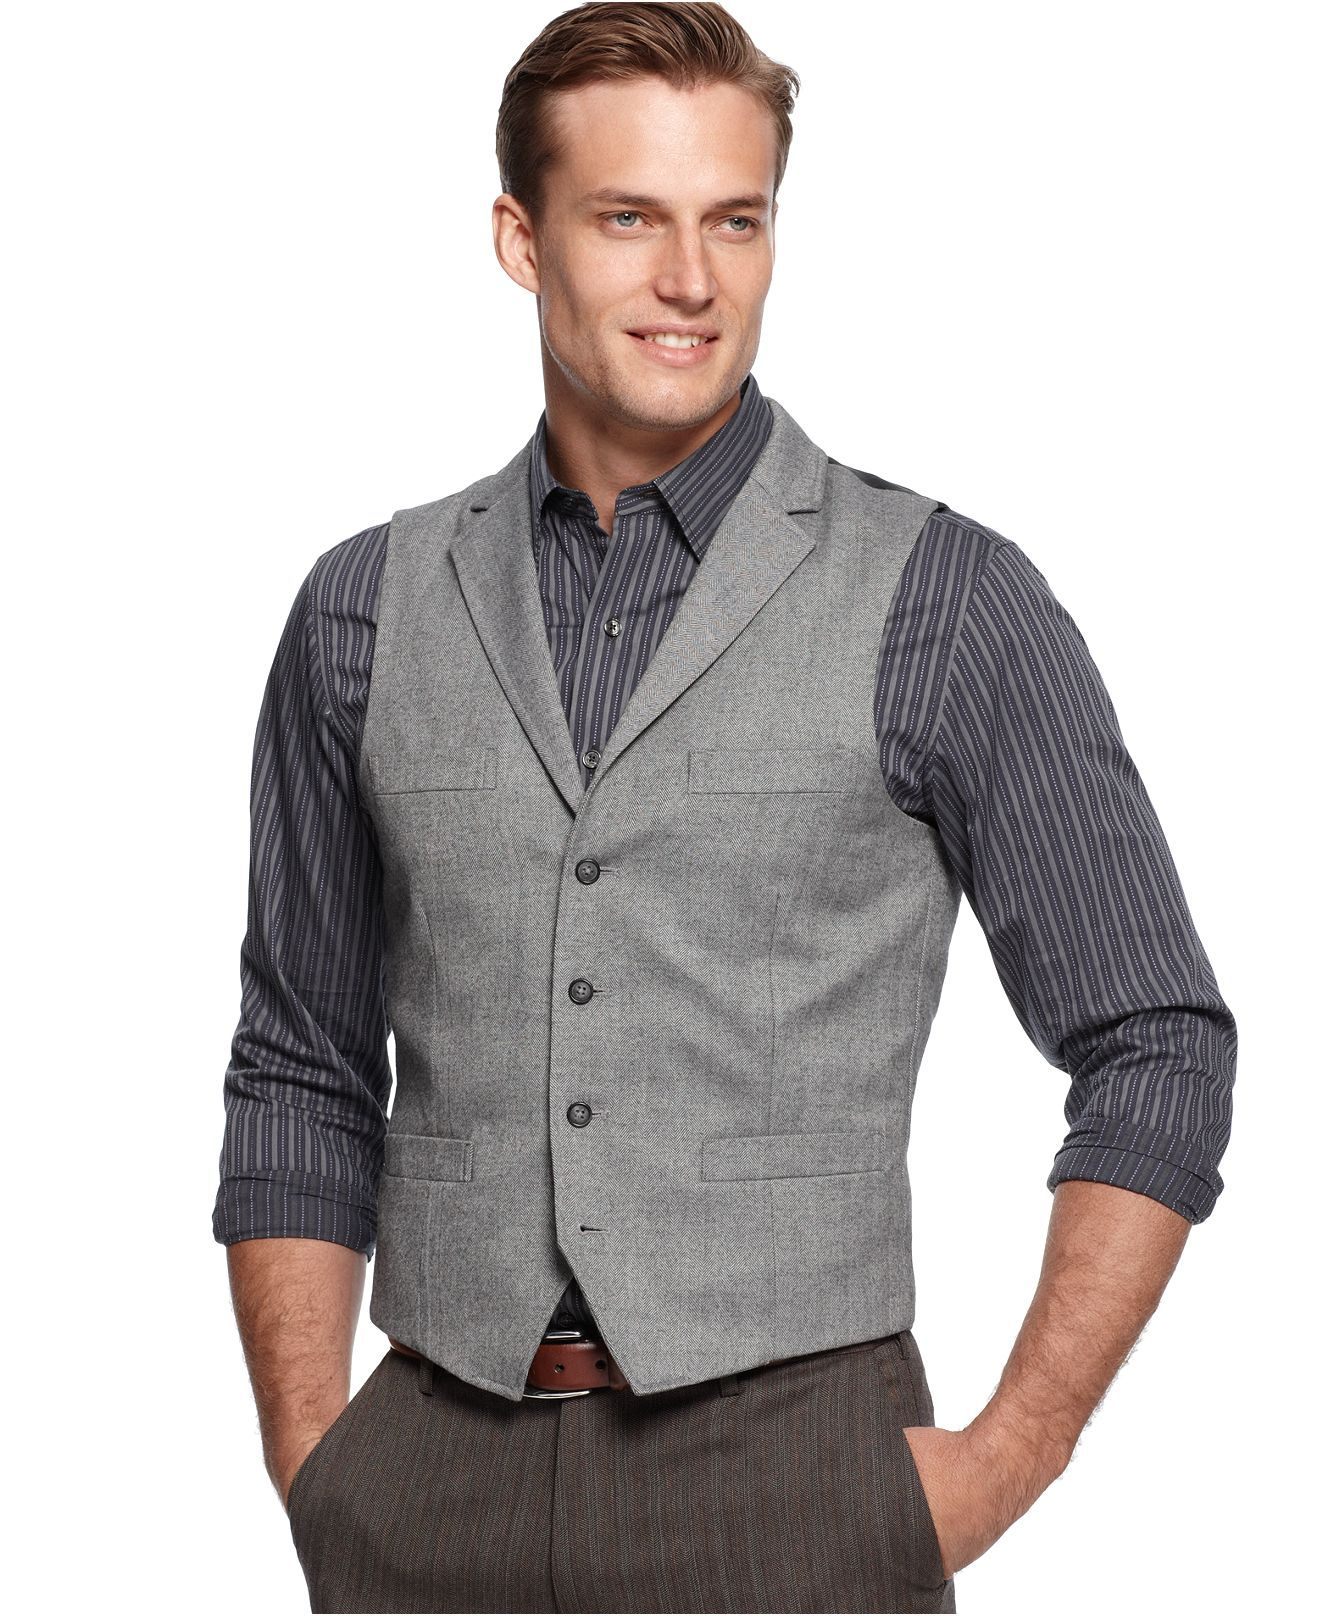 vest guys Browse the best selection of shooting vests for men at nicashooting including trusted brands like browning, beretta, bob allen caesar guerini and nica.